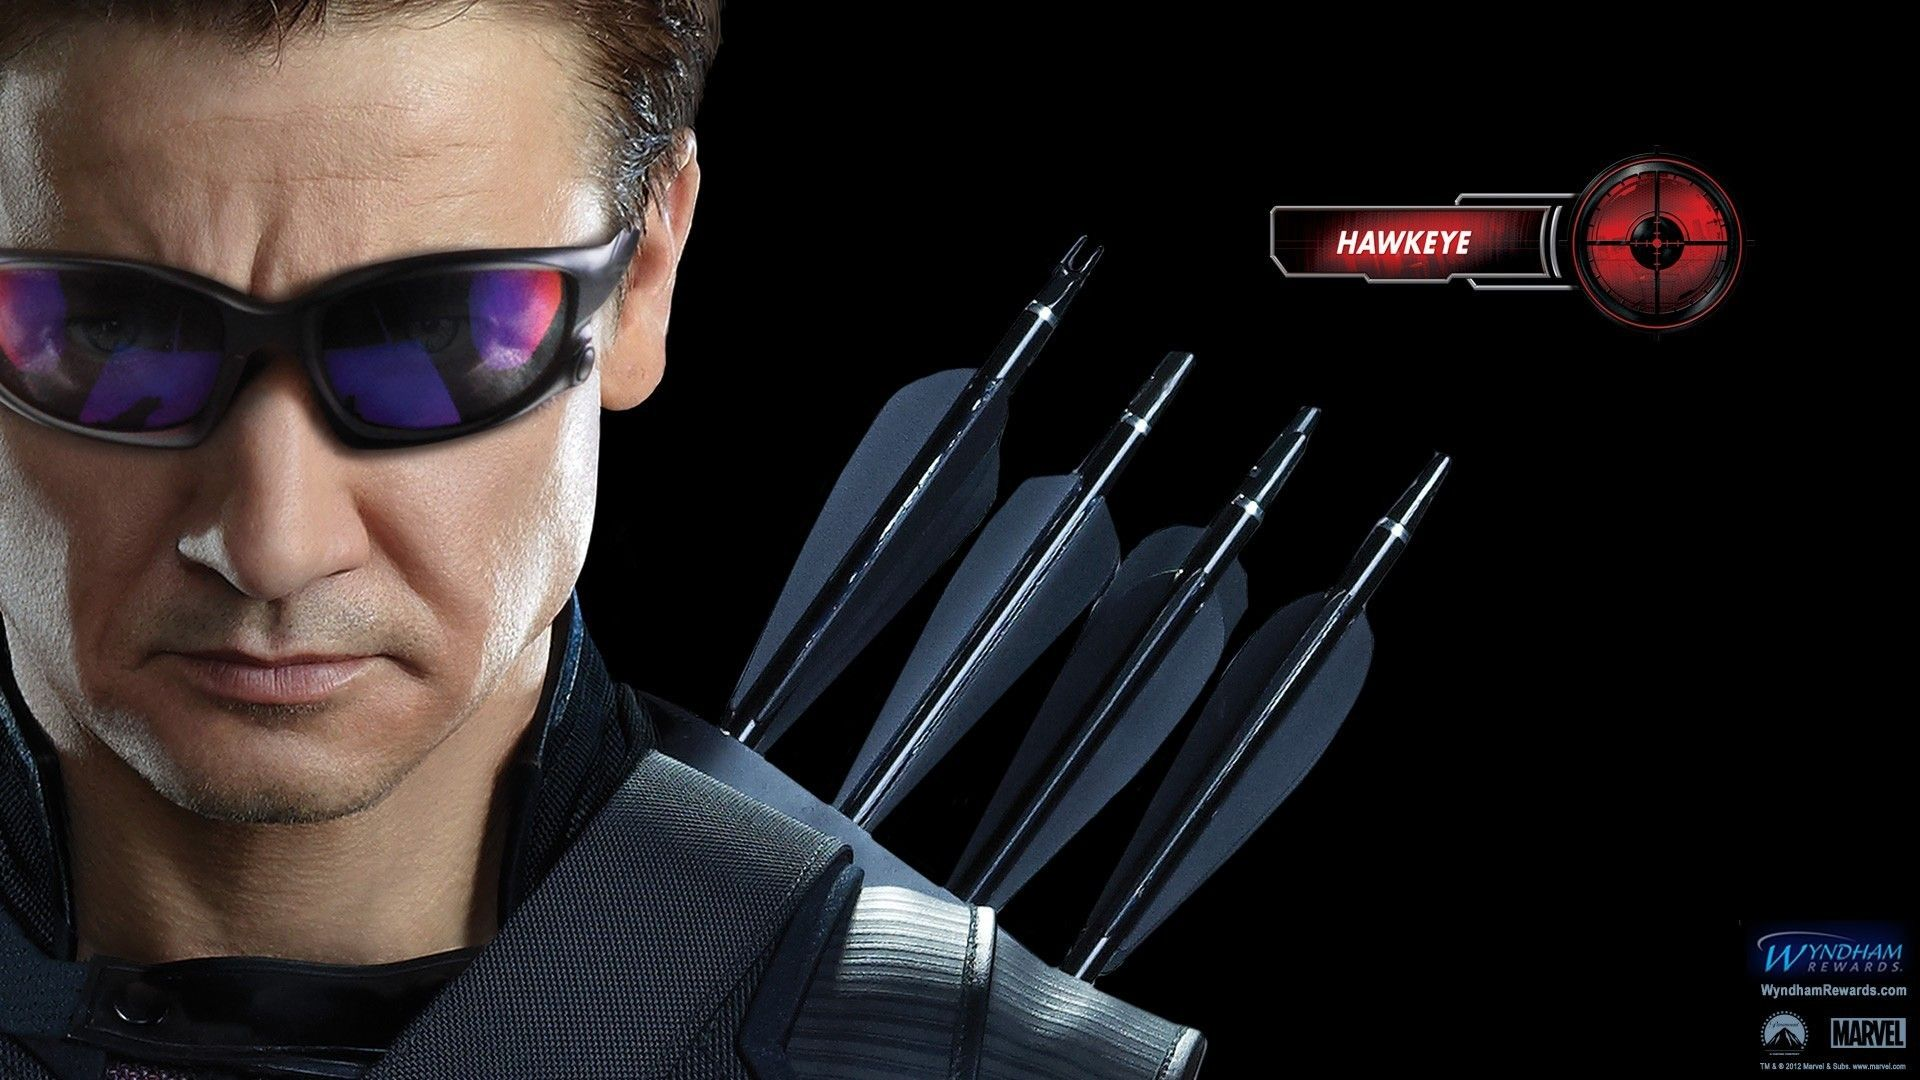 1920x1080 Hawkeye jeremy renner the avengers movie faces wallpaper ...